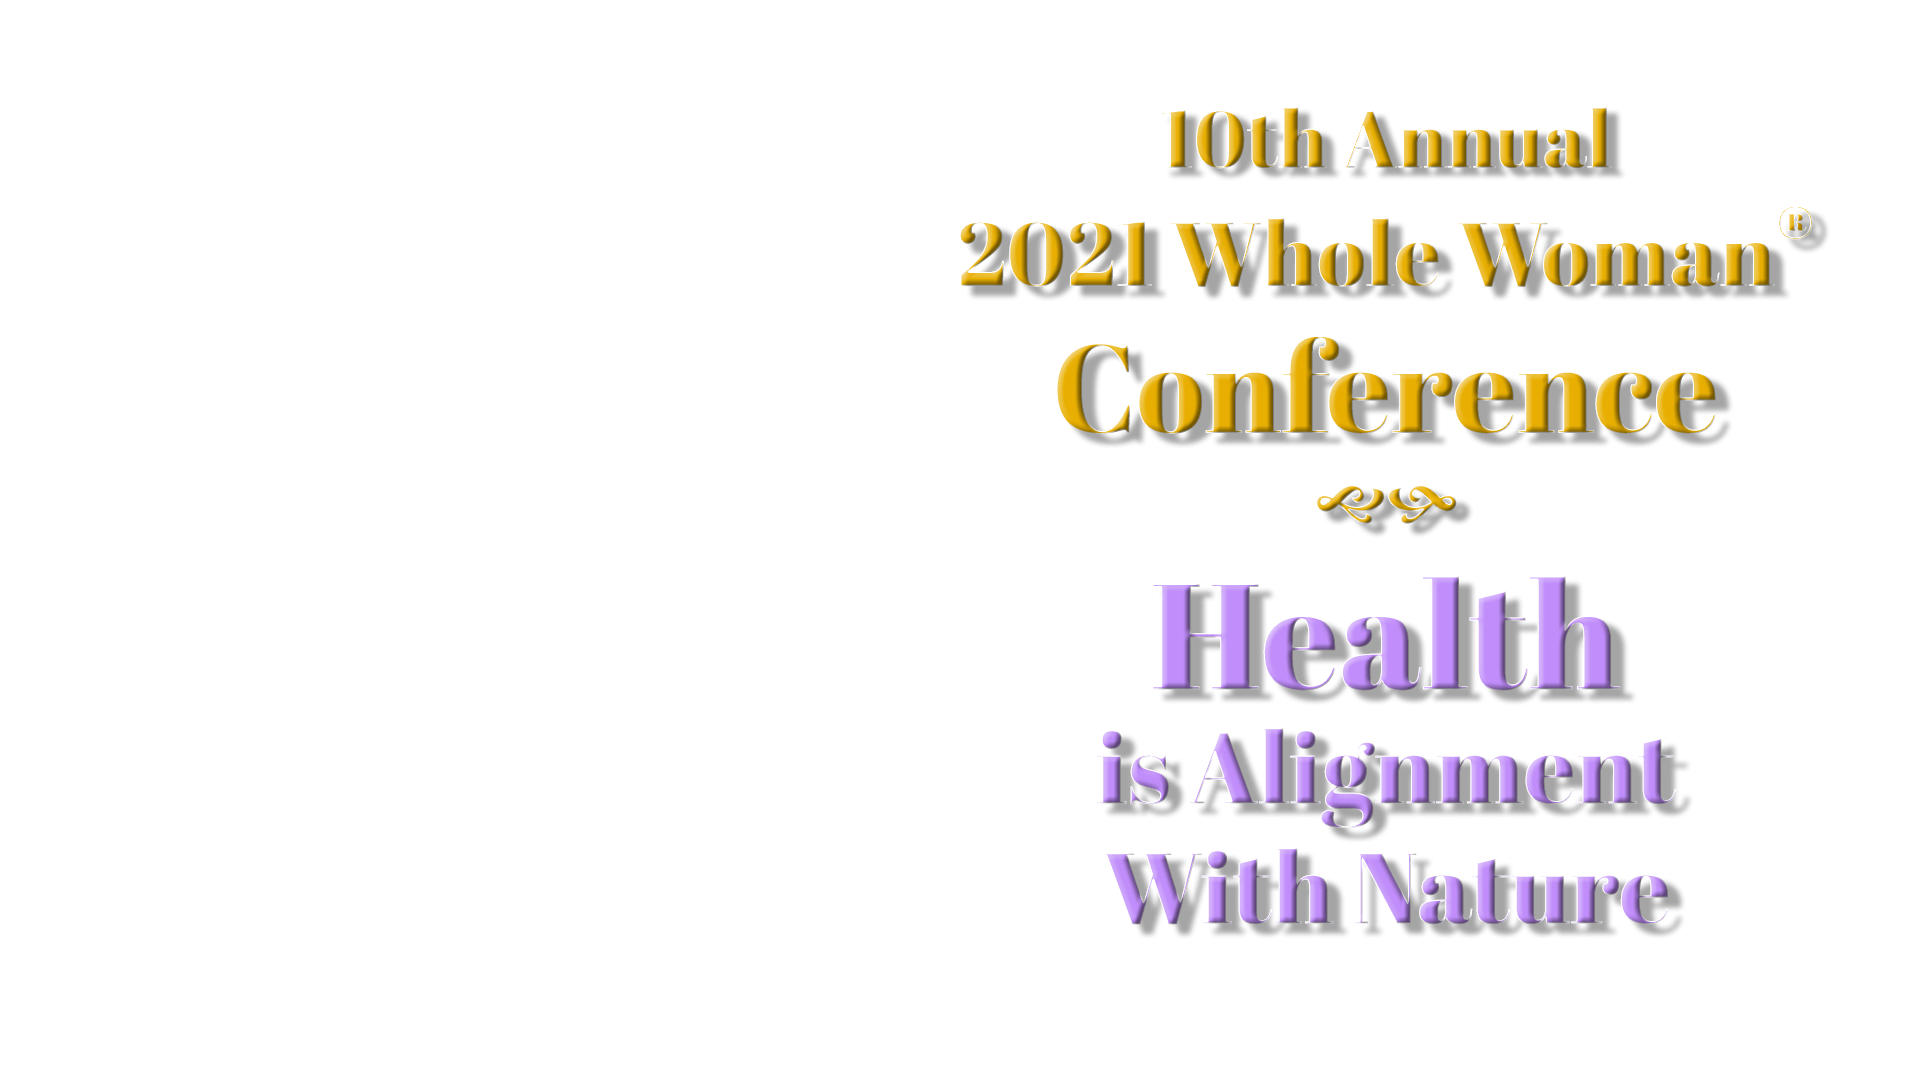 Whole Woman Conference